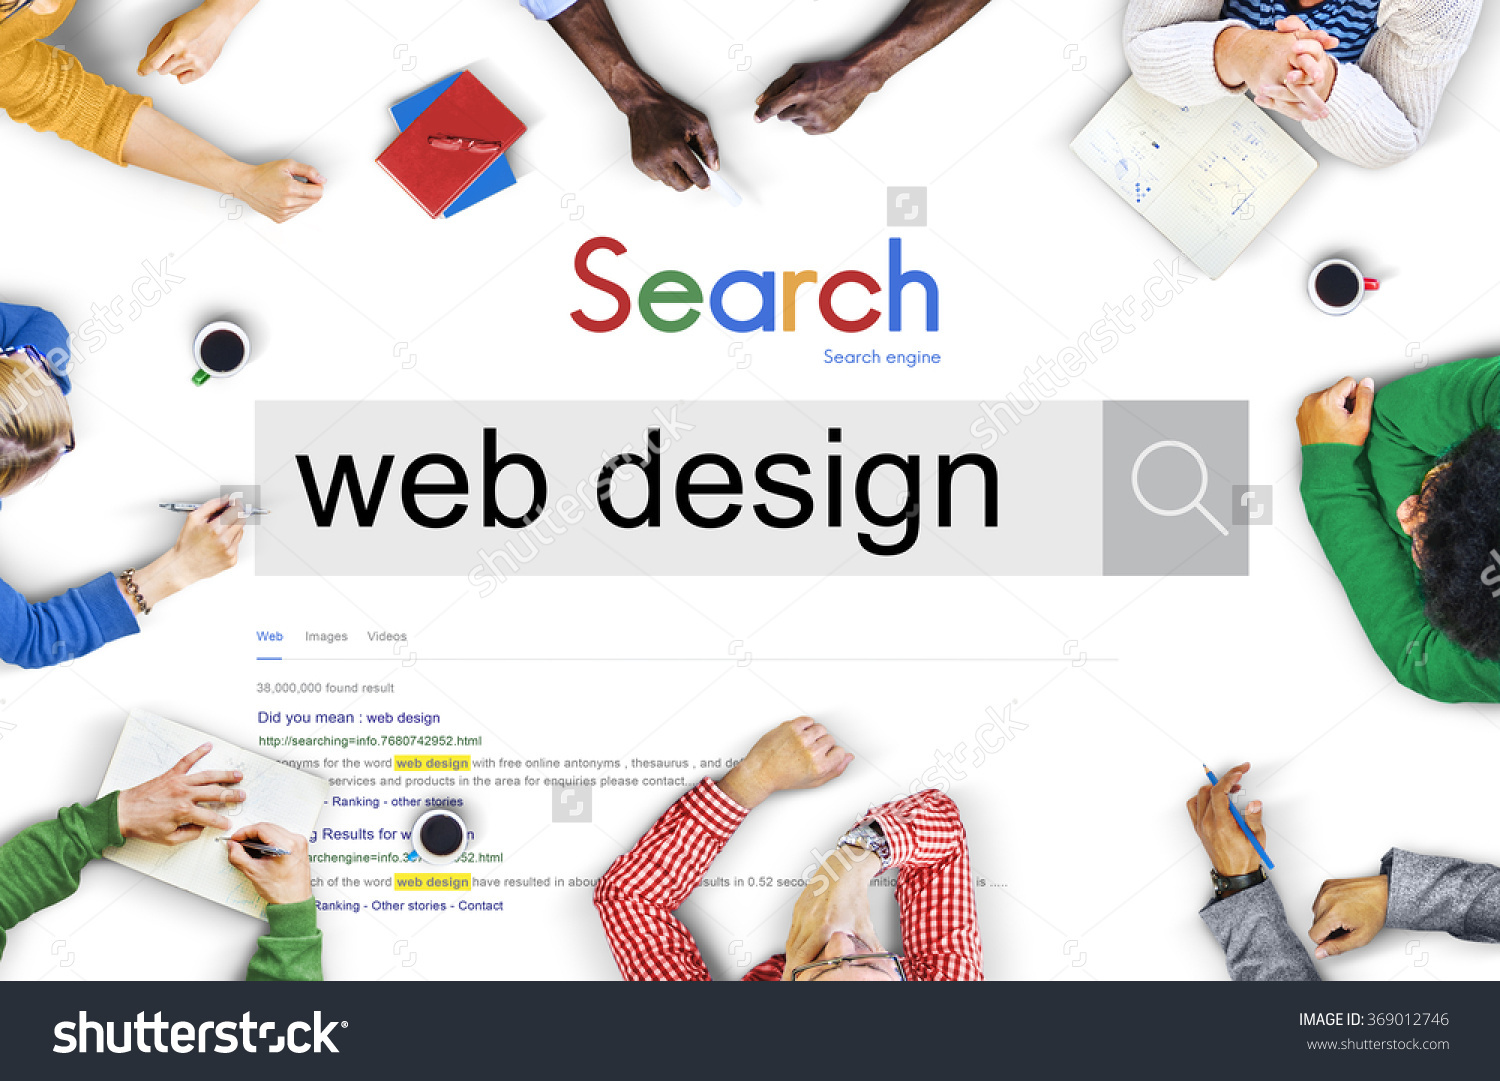 stock-photo-web-design-website-homepage-ideas-programming-concept-369012746